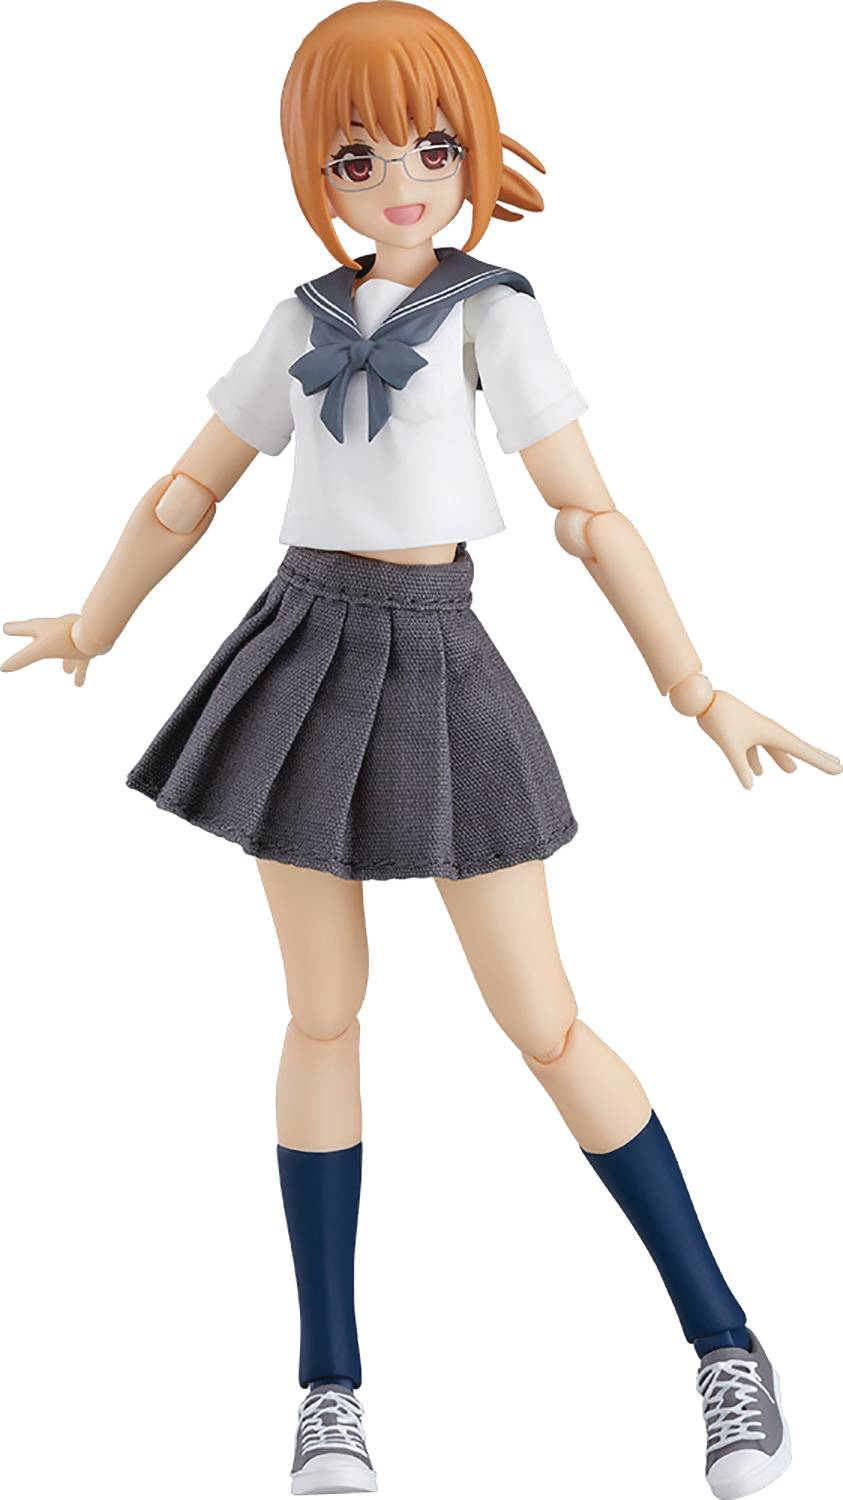 EMILY FEMALE BODY SAILOR OUTFIT FIGMA AF